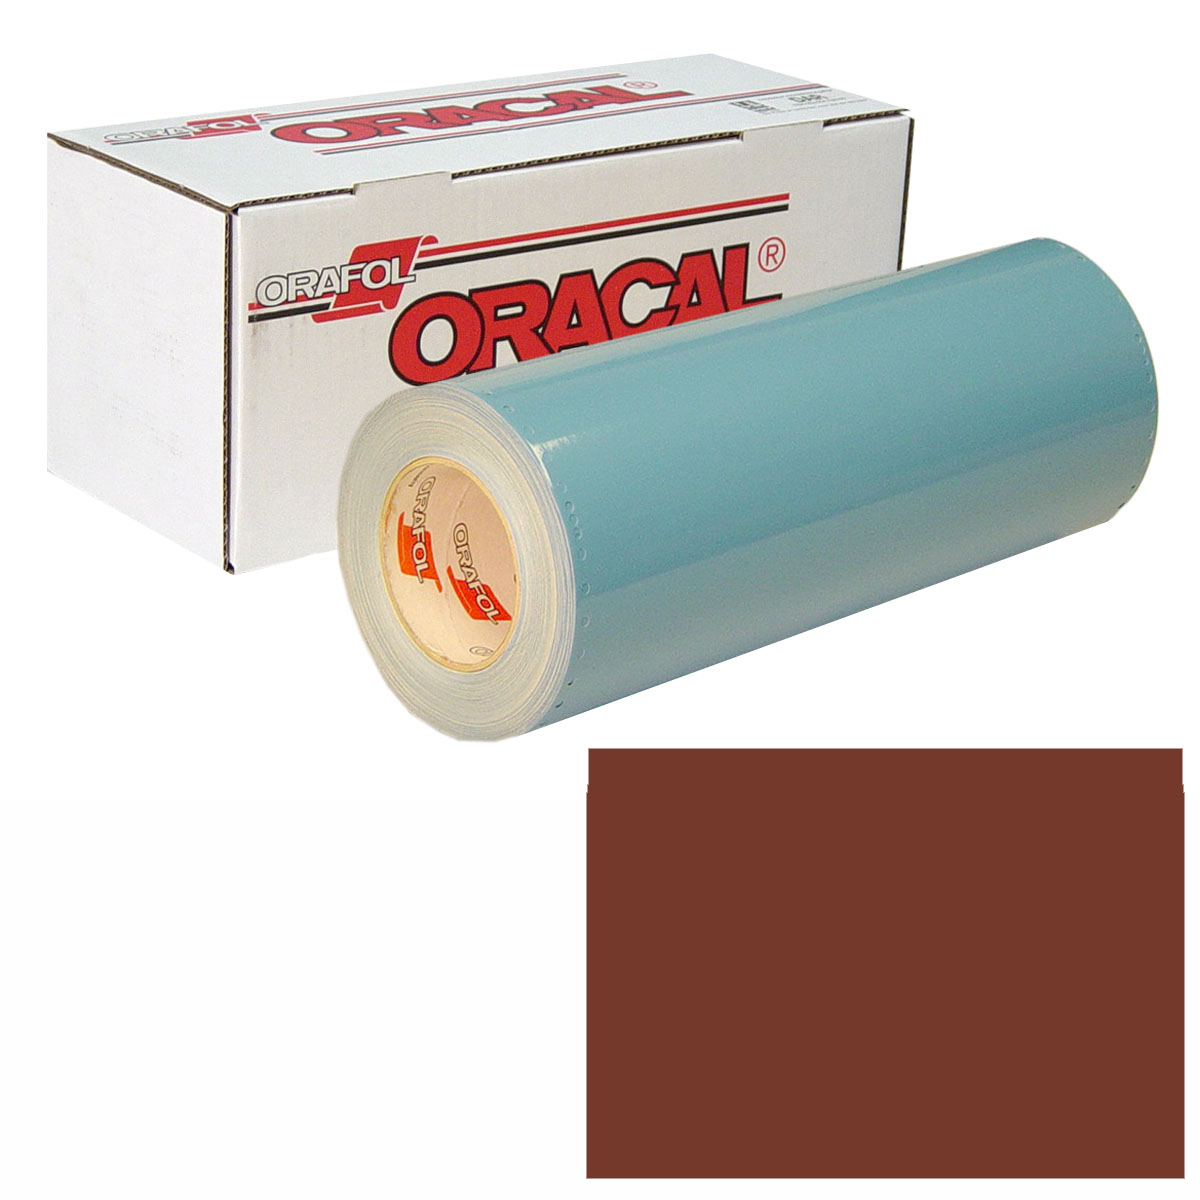 ORACAL 751 Unp 24In X 50Yd 079 Red Brown